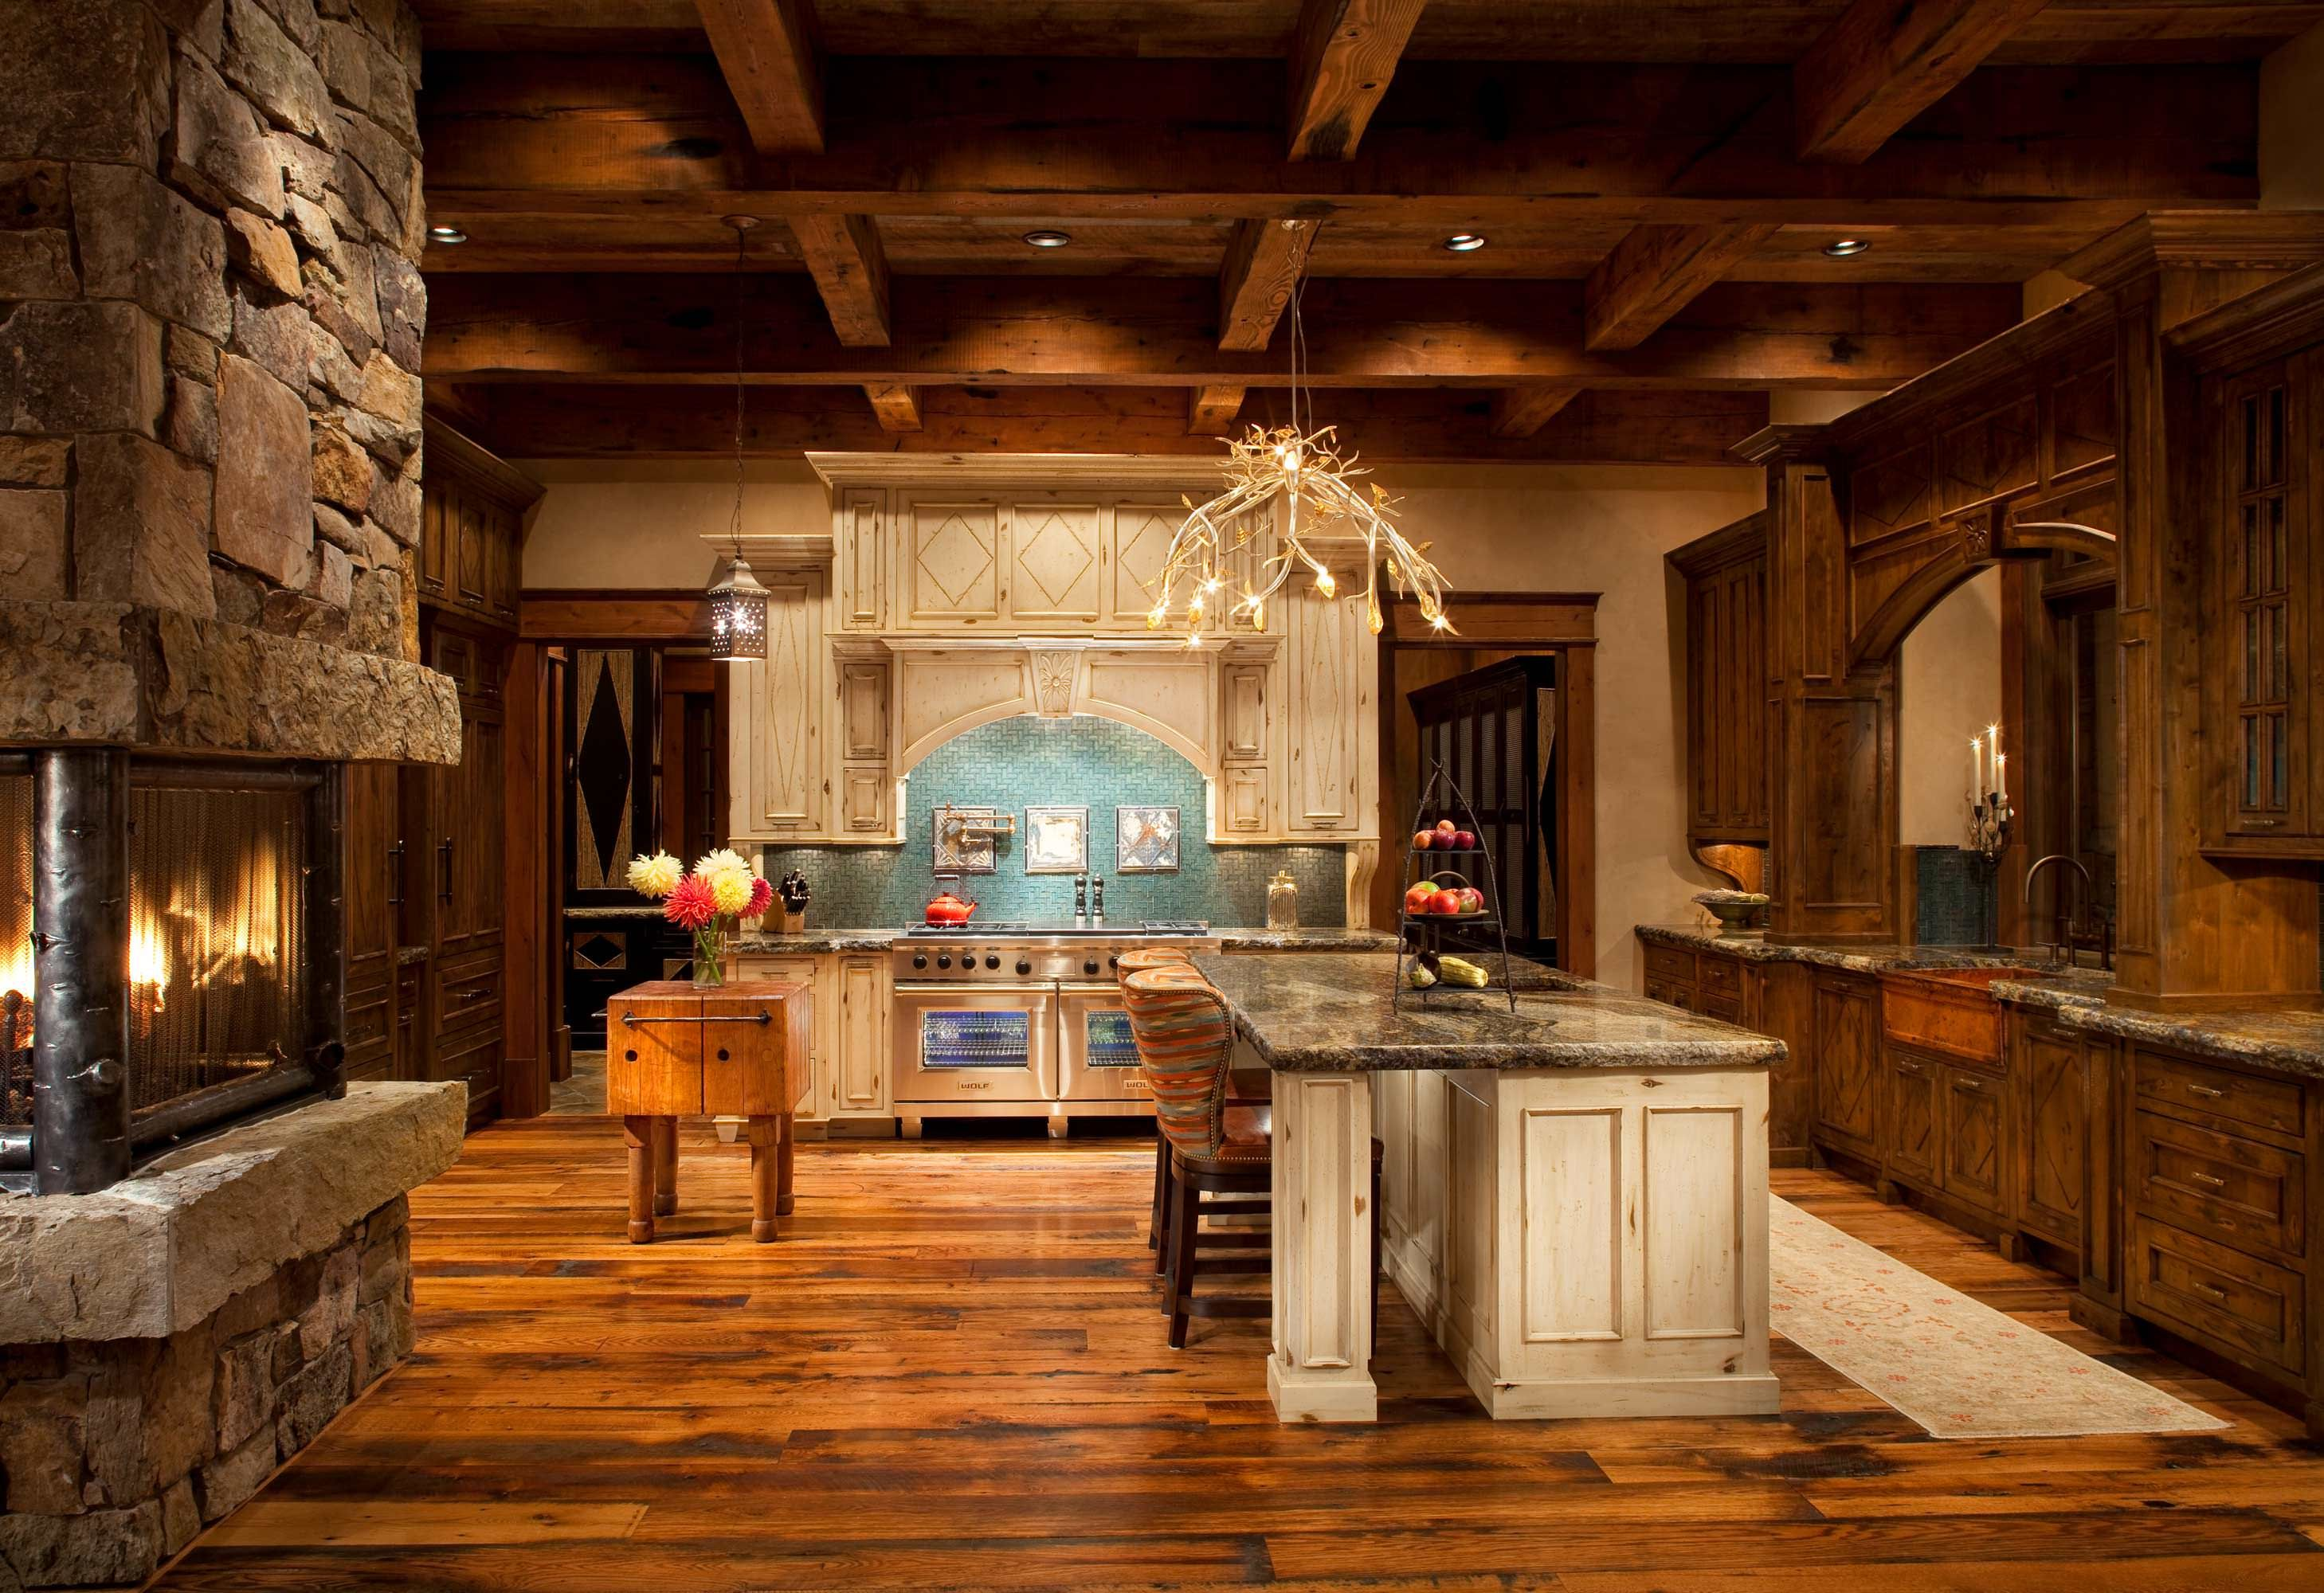 impressive kitchen features reclaimed fir ceiling joists and and a